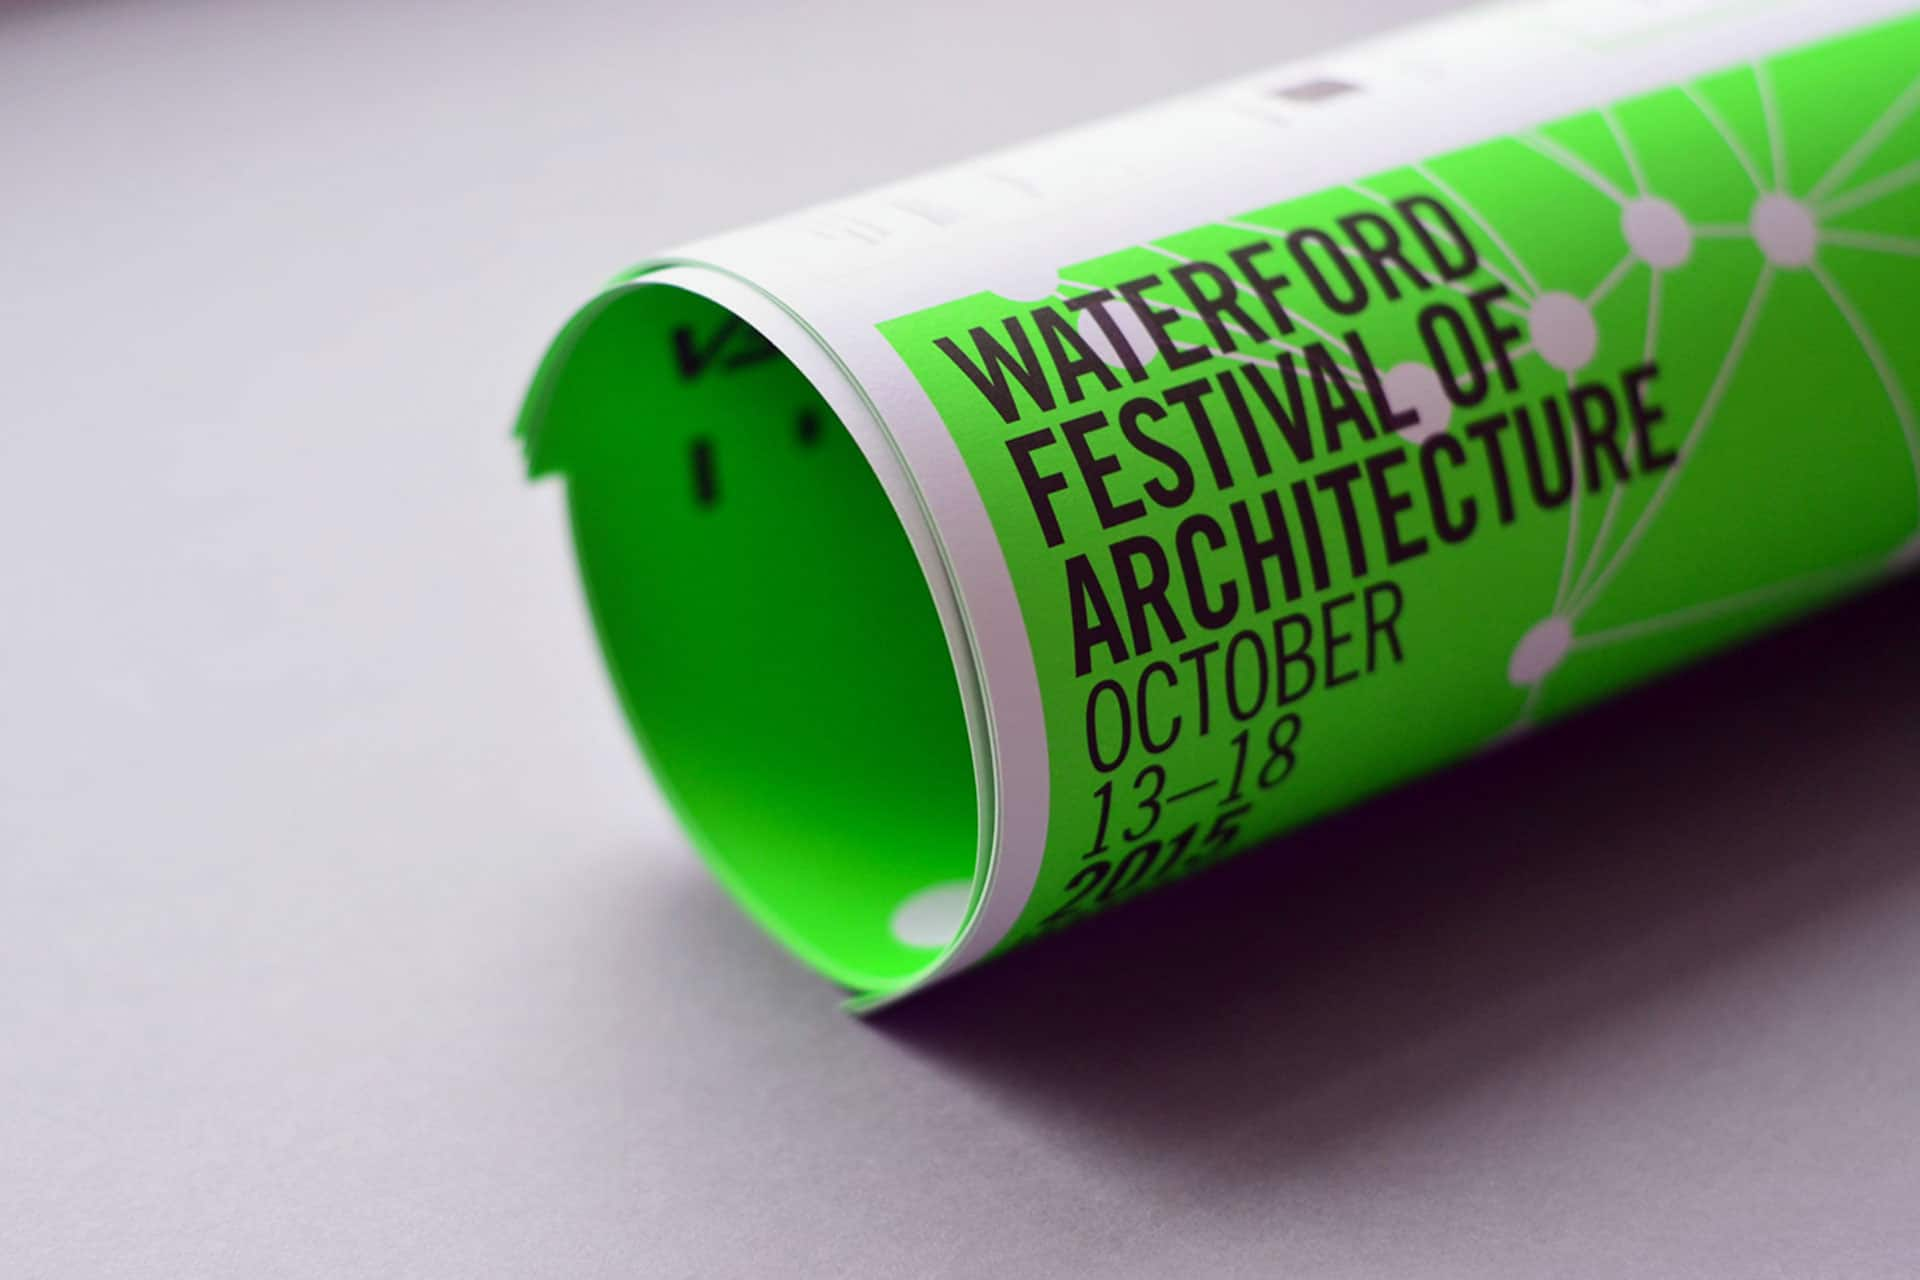 Waterford Festival of Architecture 2015